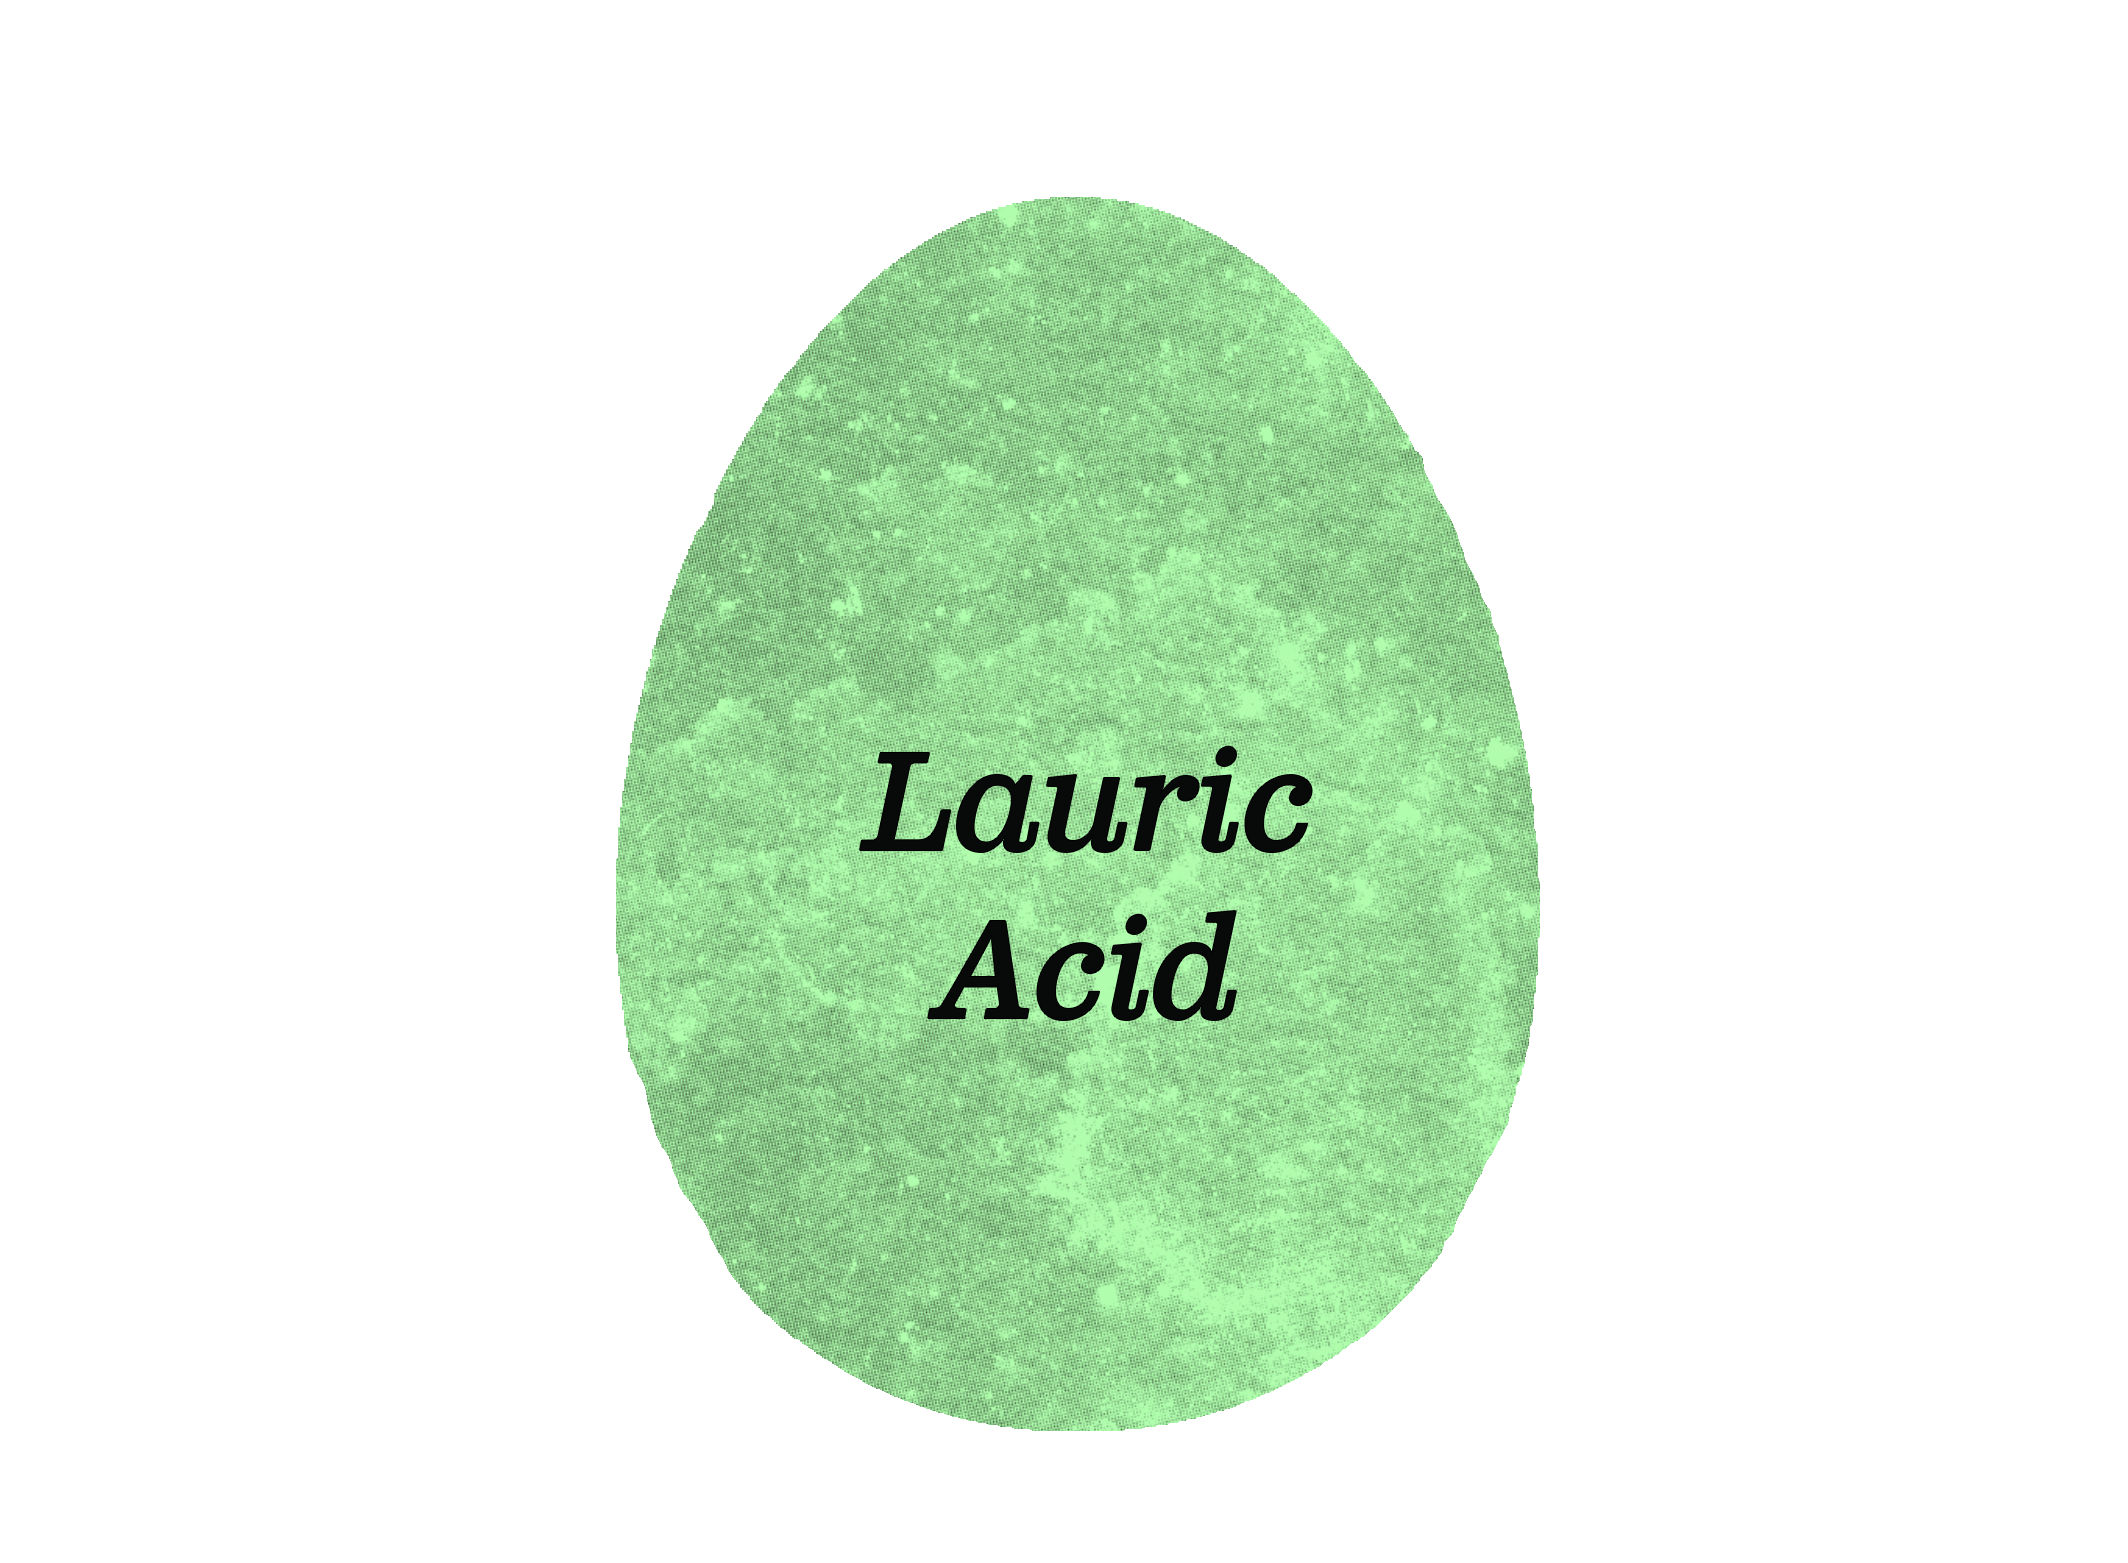 LauricAcid.png